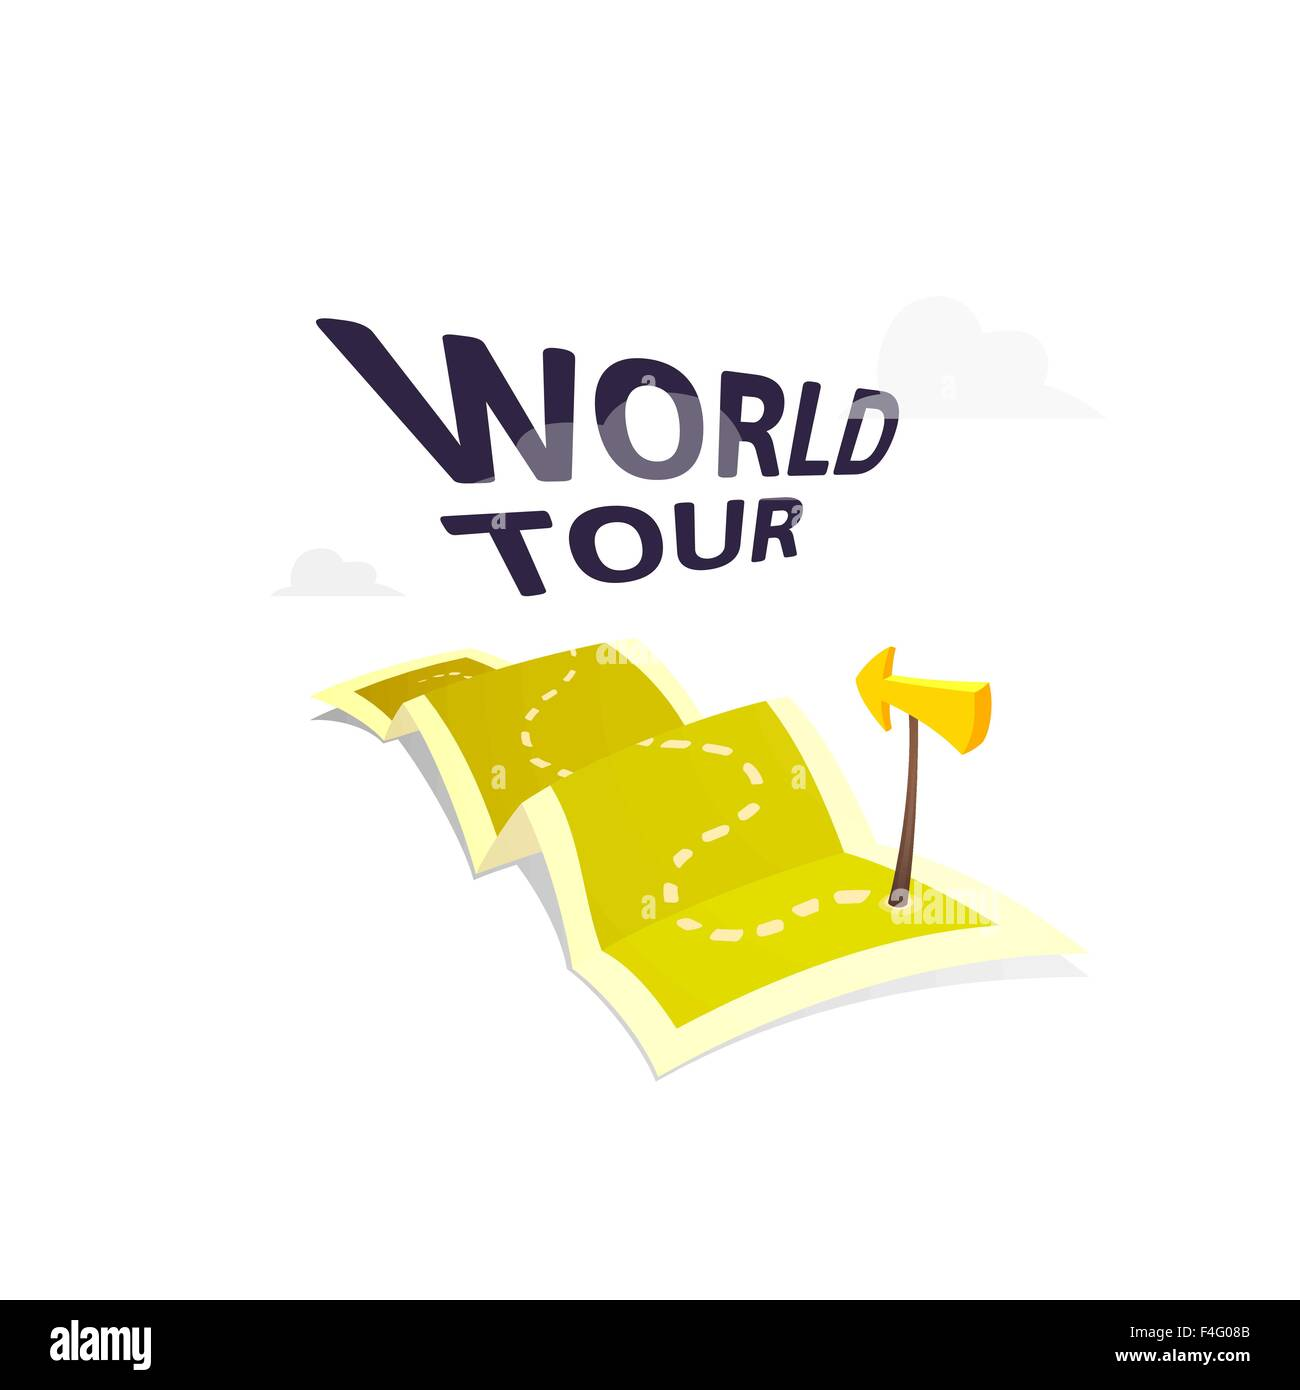 World tour concept logo isolated on white background long route in world tour concept logo isolated on white background long route in travel map with guide marker gumiabroncs Image collections